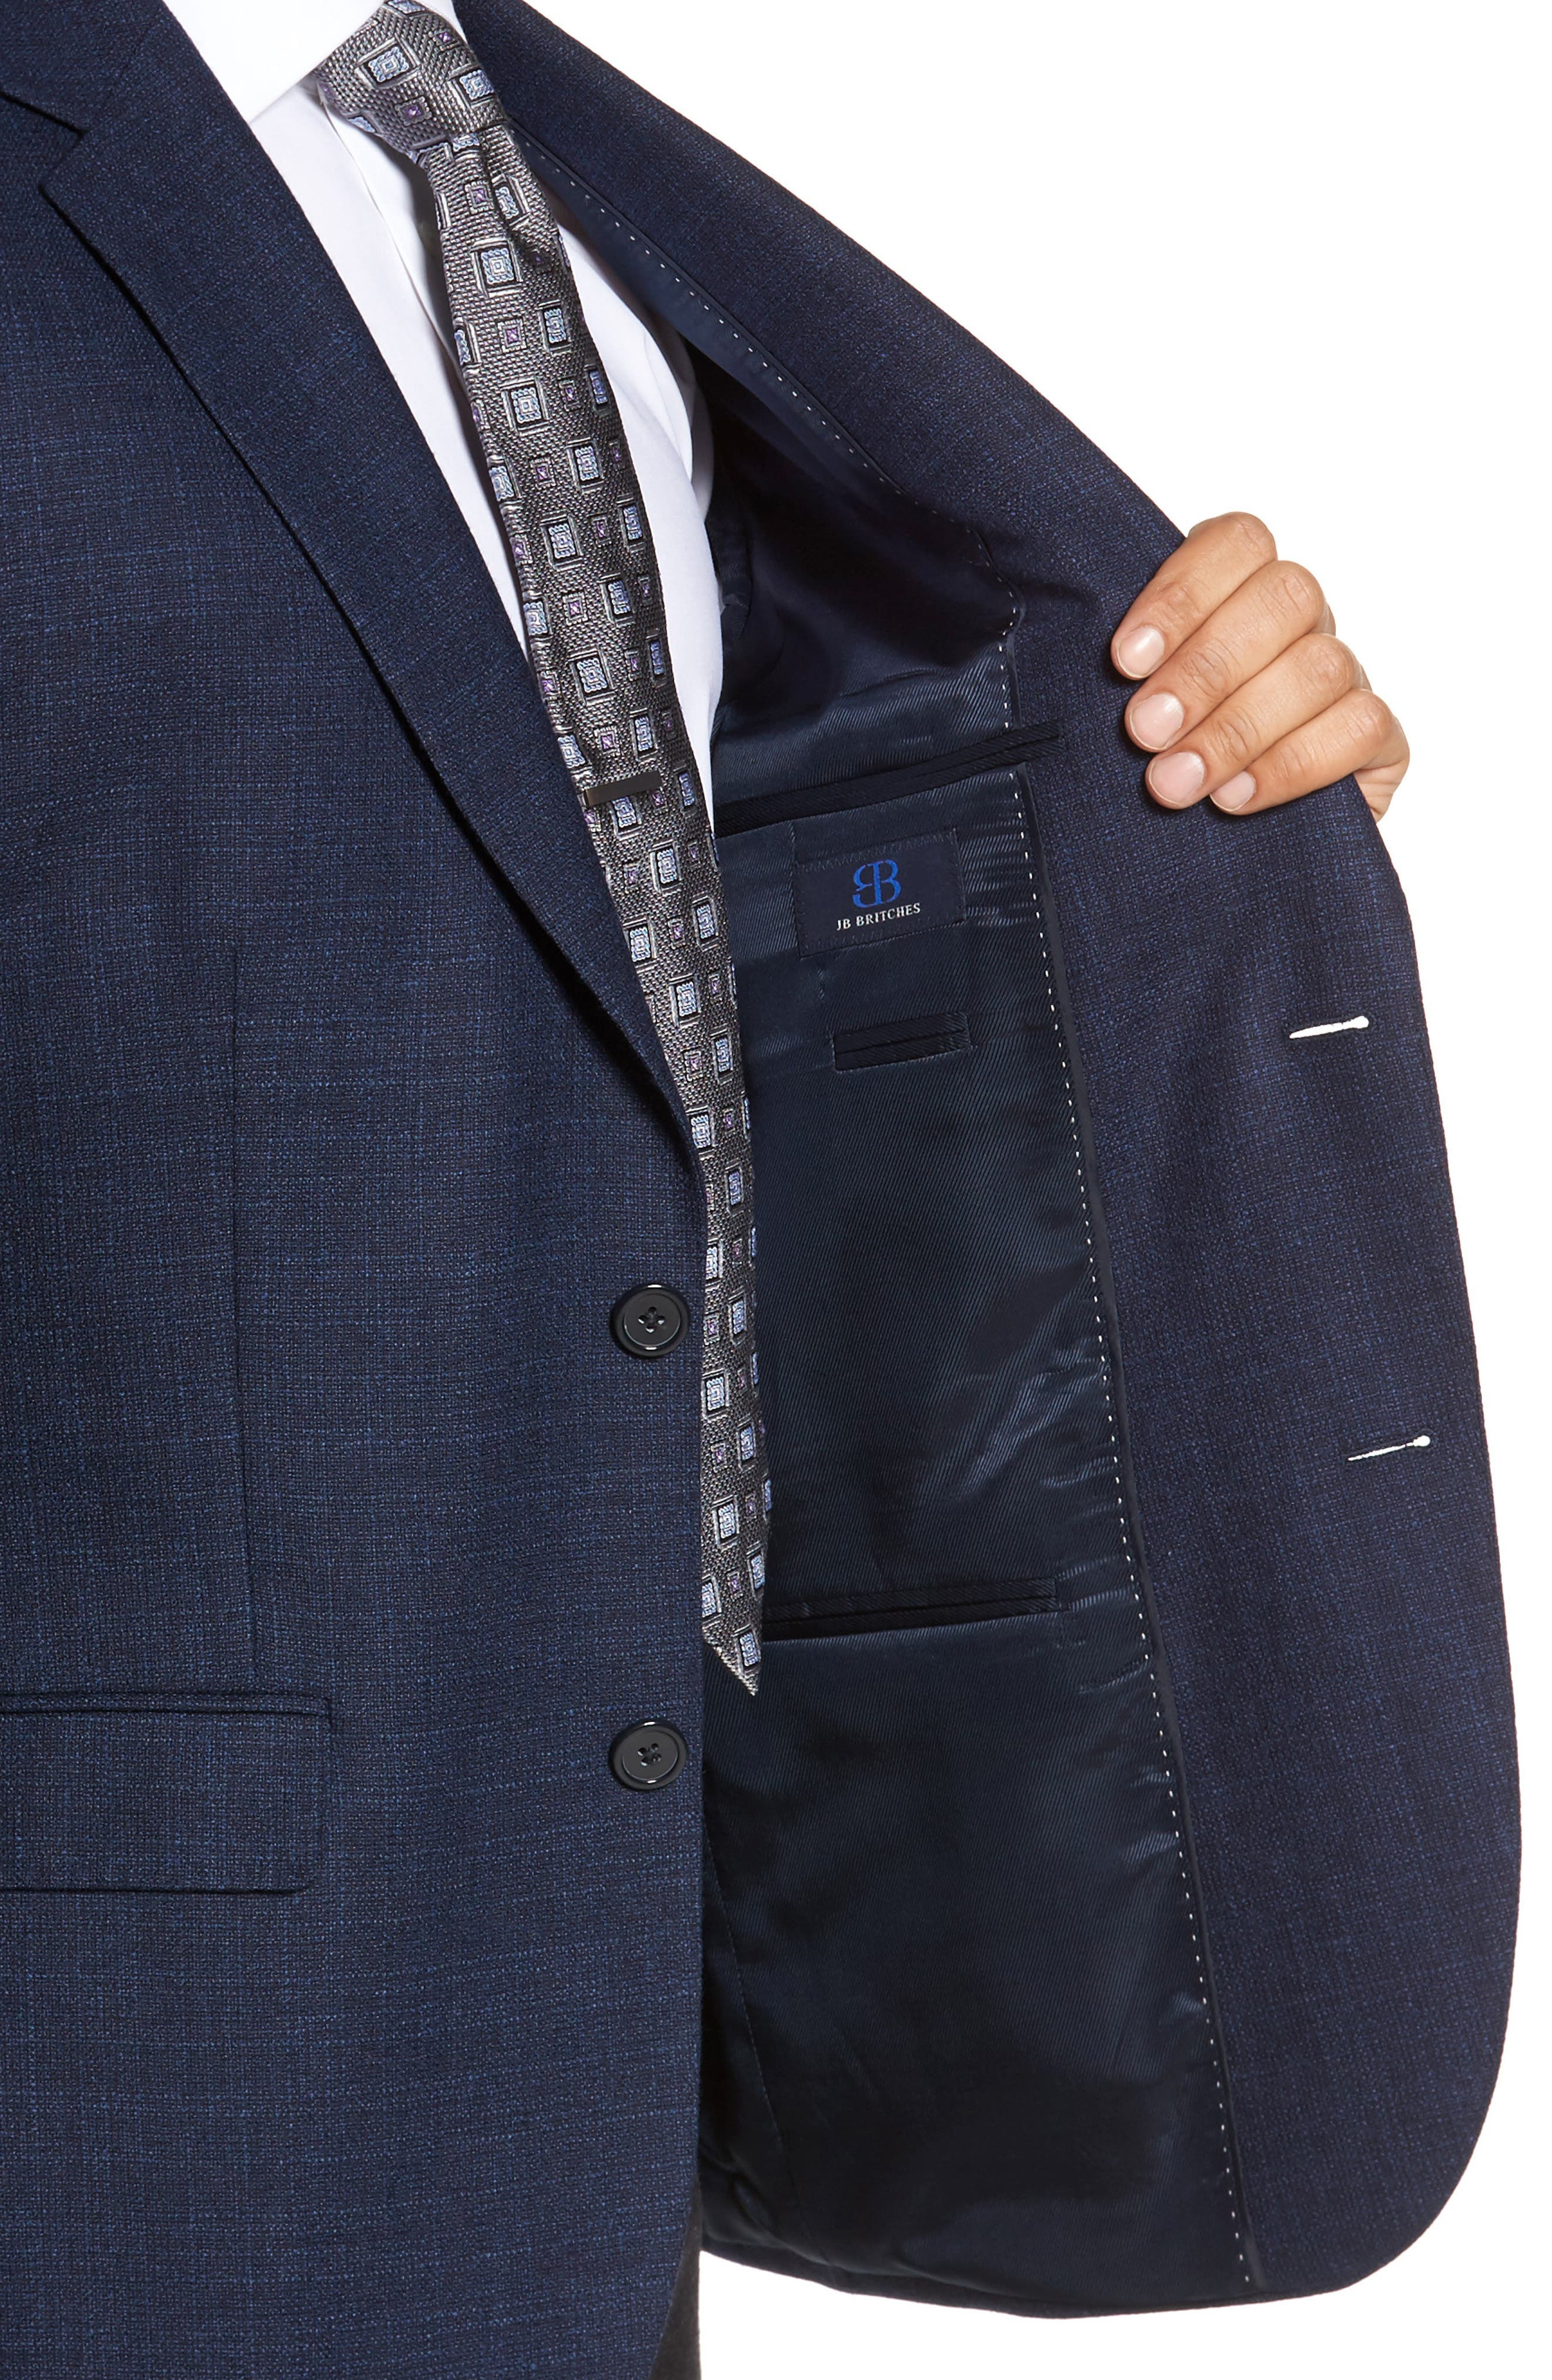 JB BRITCHES,                             Classic Fit Wool Blazer,                             Alternate thumbnail 4, color,                             422